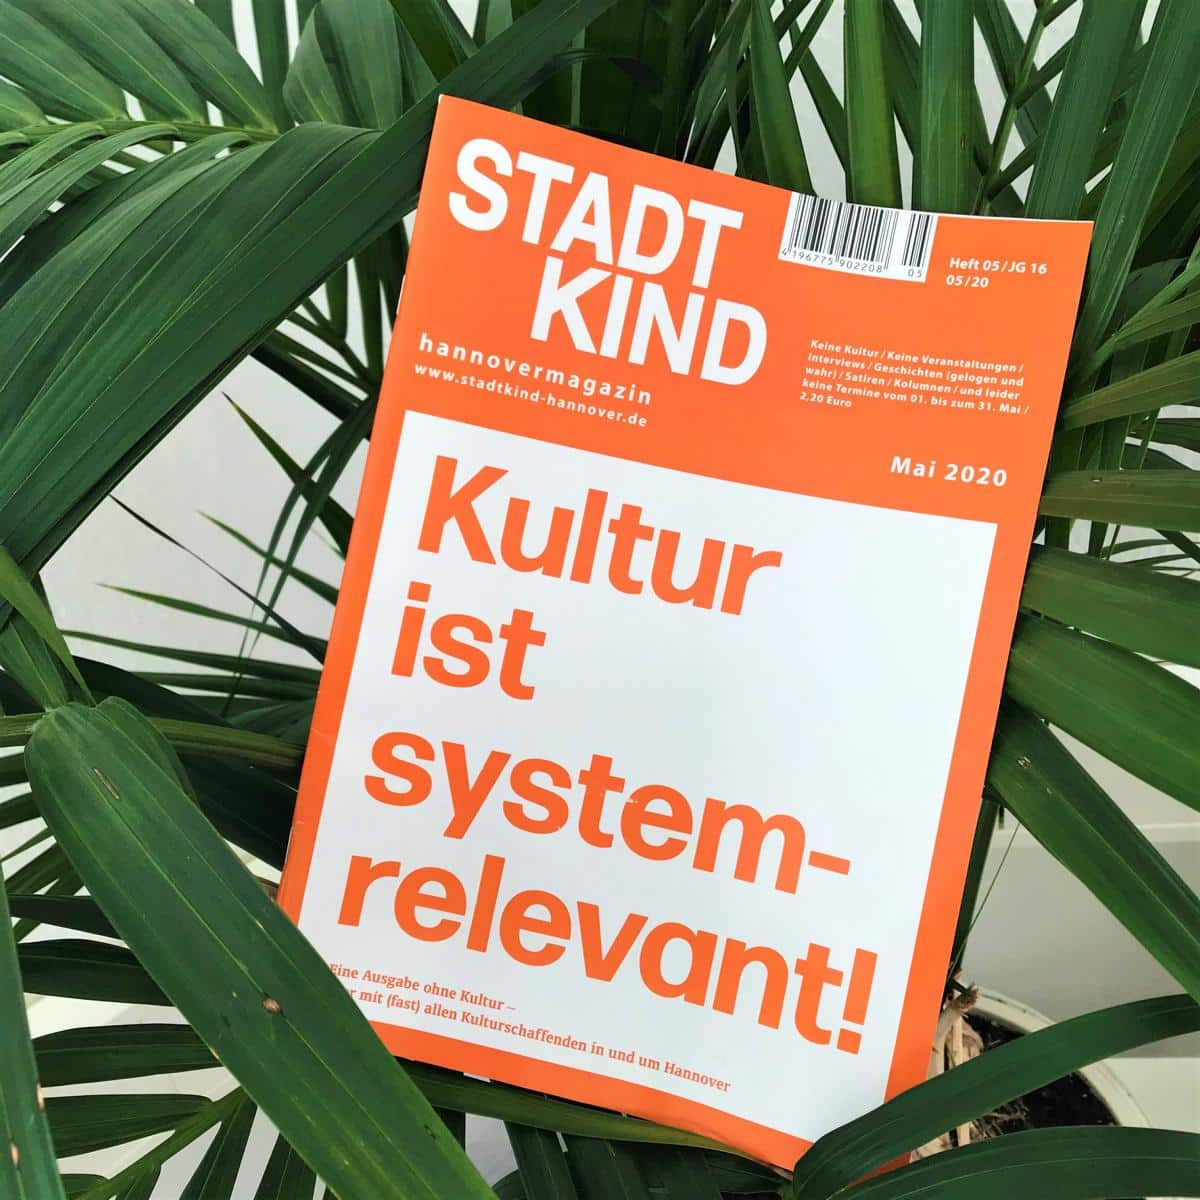 Style Hannover Stadtkind Abo 1 - Stadtkind: (Geschenk-)Abo